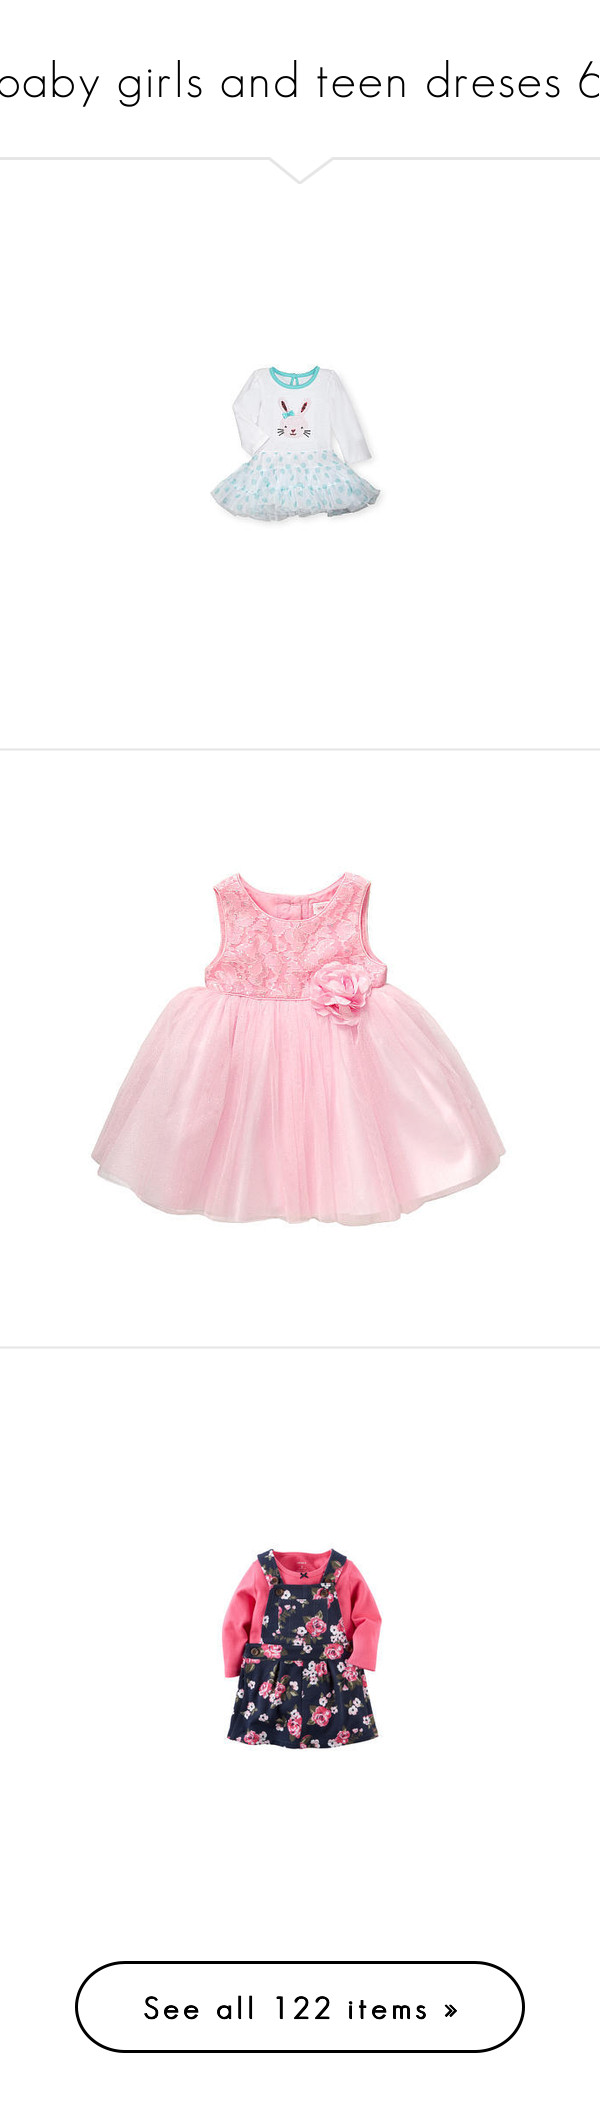 Baby girls and teen dreses